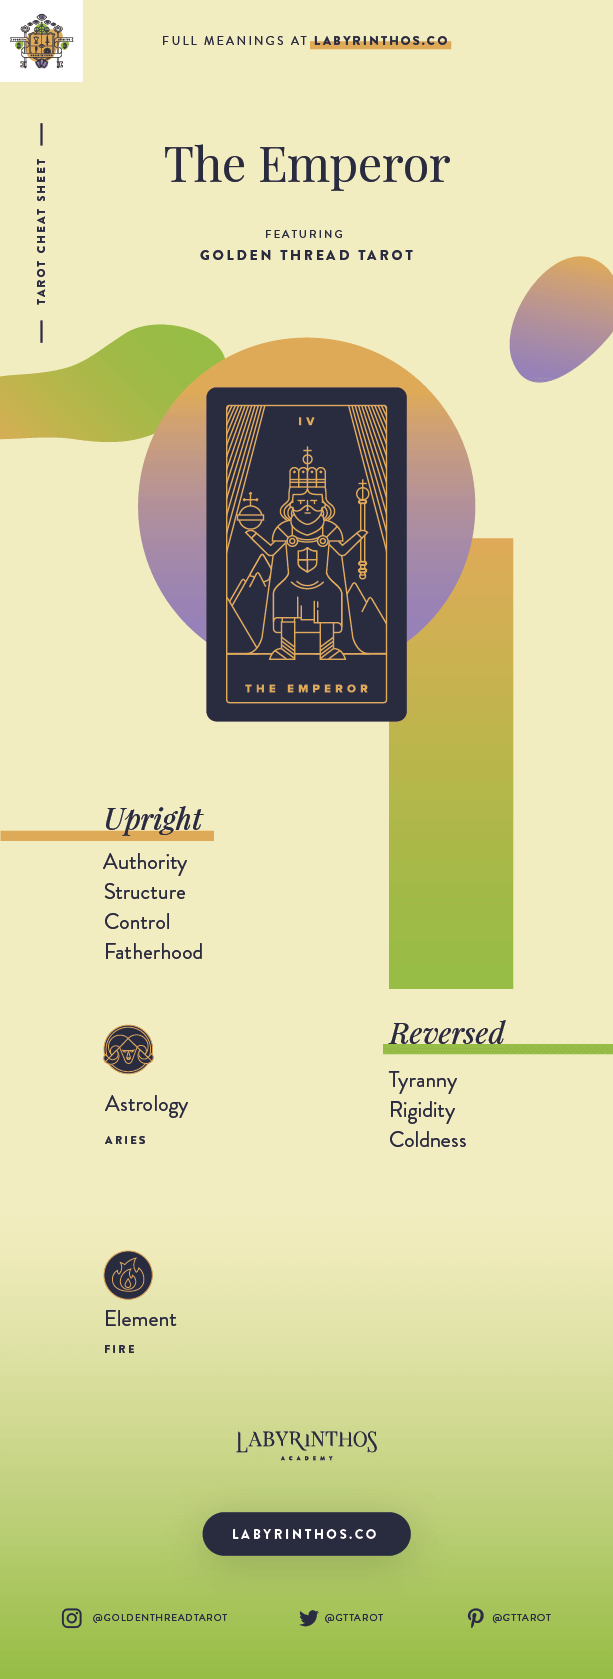 The Emperor Meaning - Tarot Card Meanings Cheat Sheet